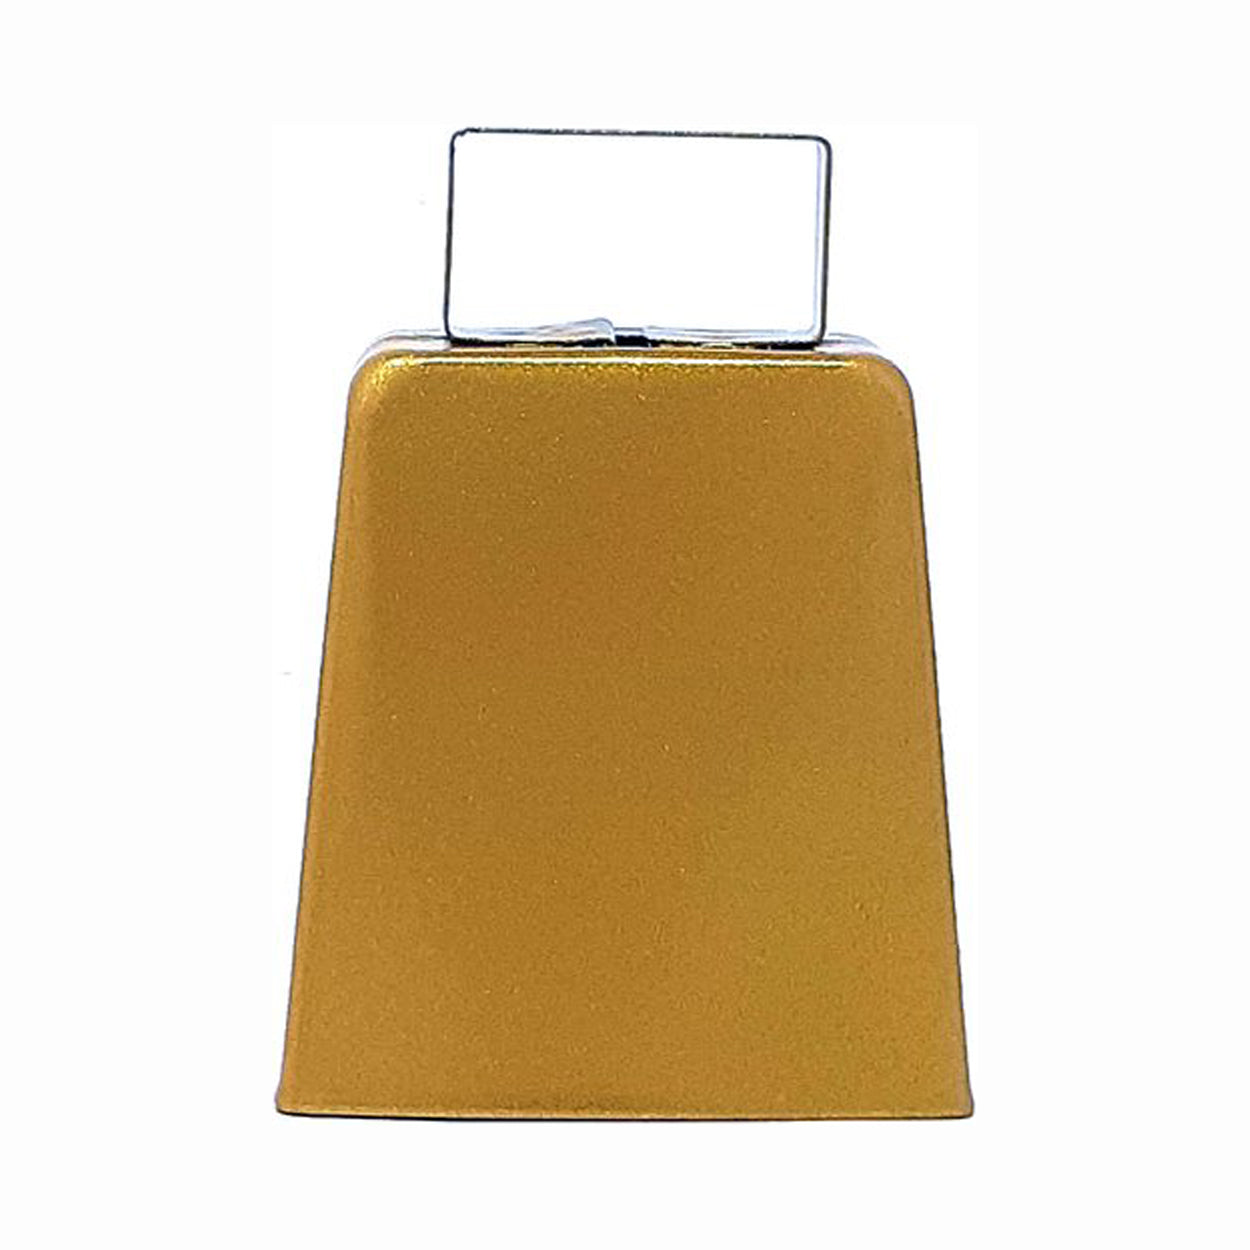 "Gold 4"" High Cowbell (1, 6 or 96)"